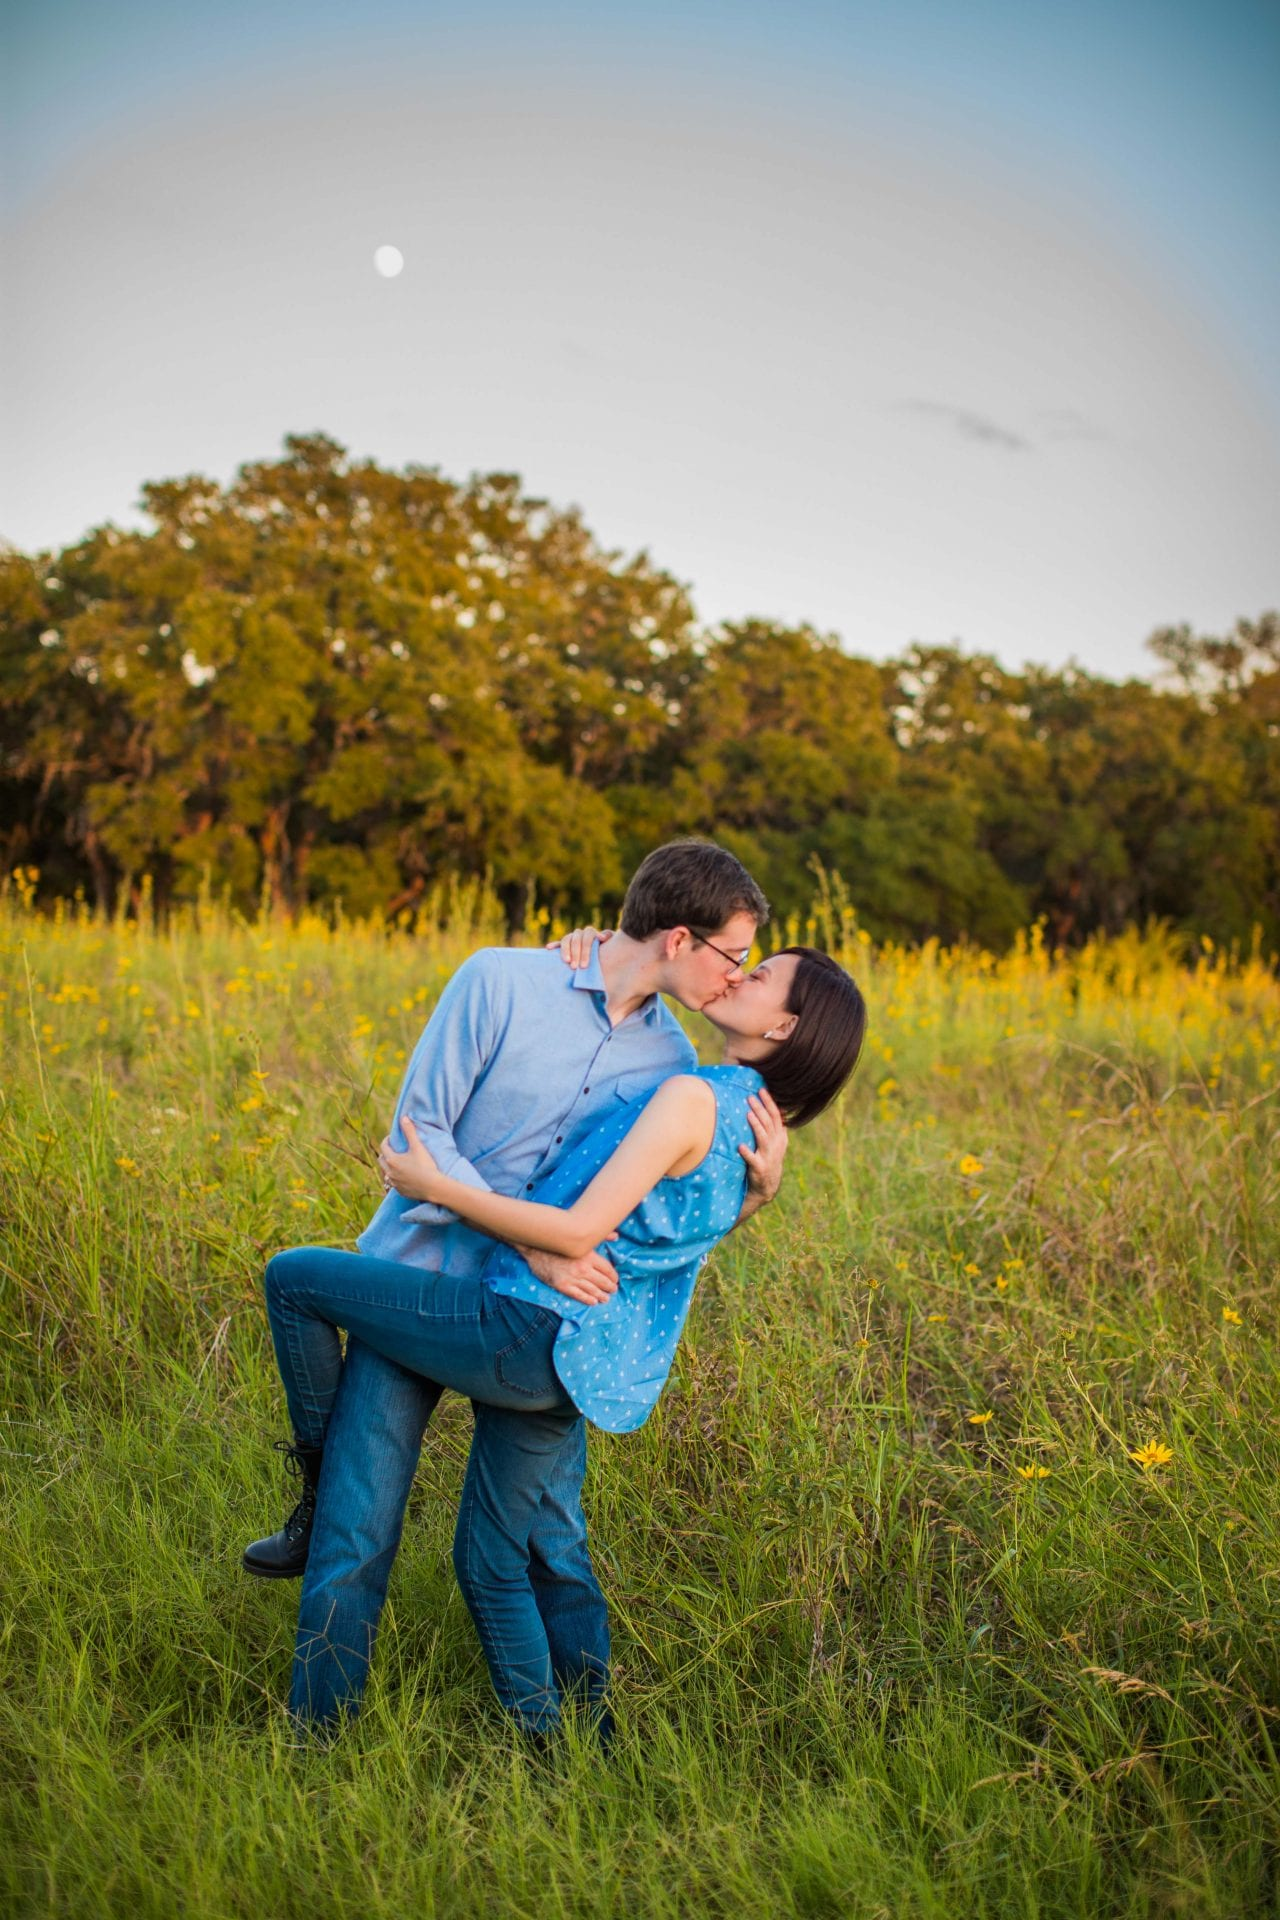 Josh and Tina engagement session at park in tall grass dip